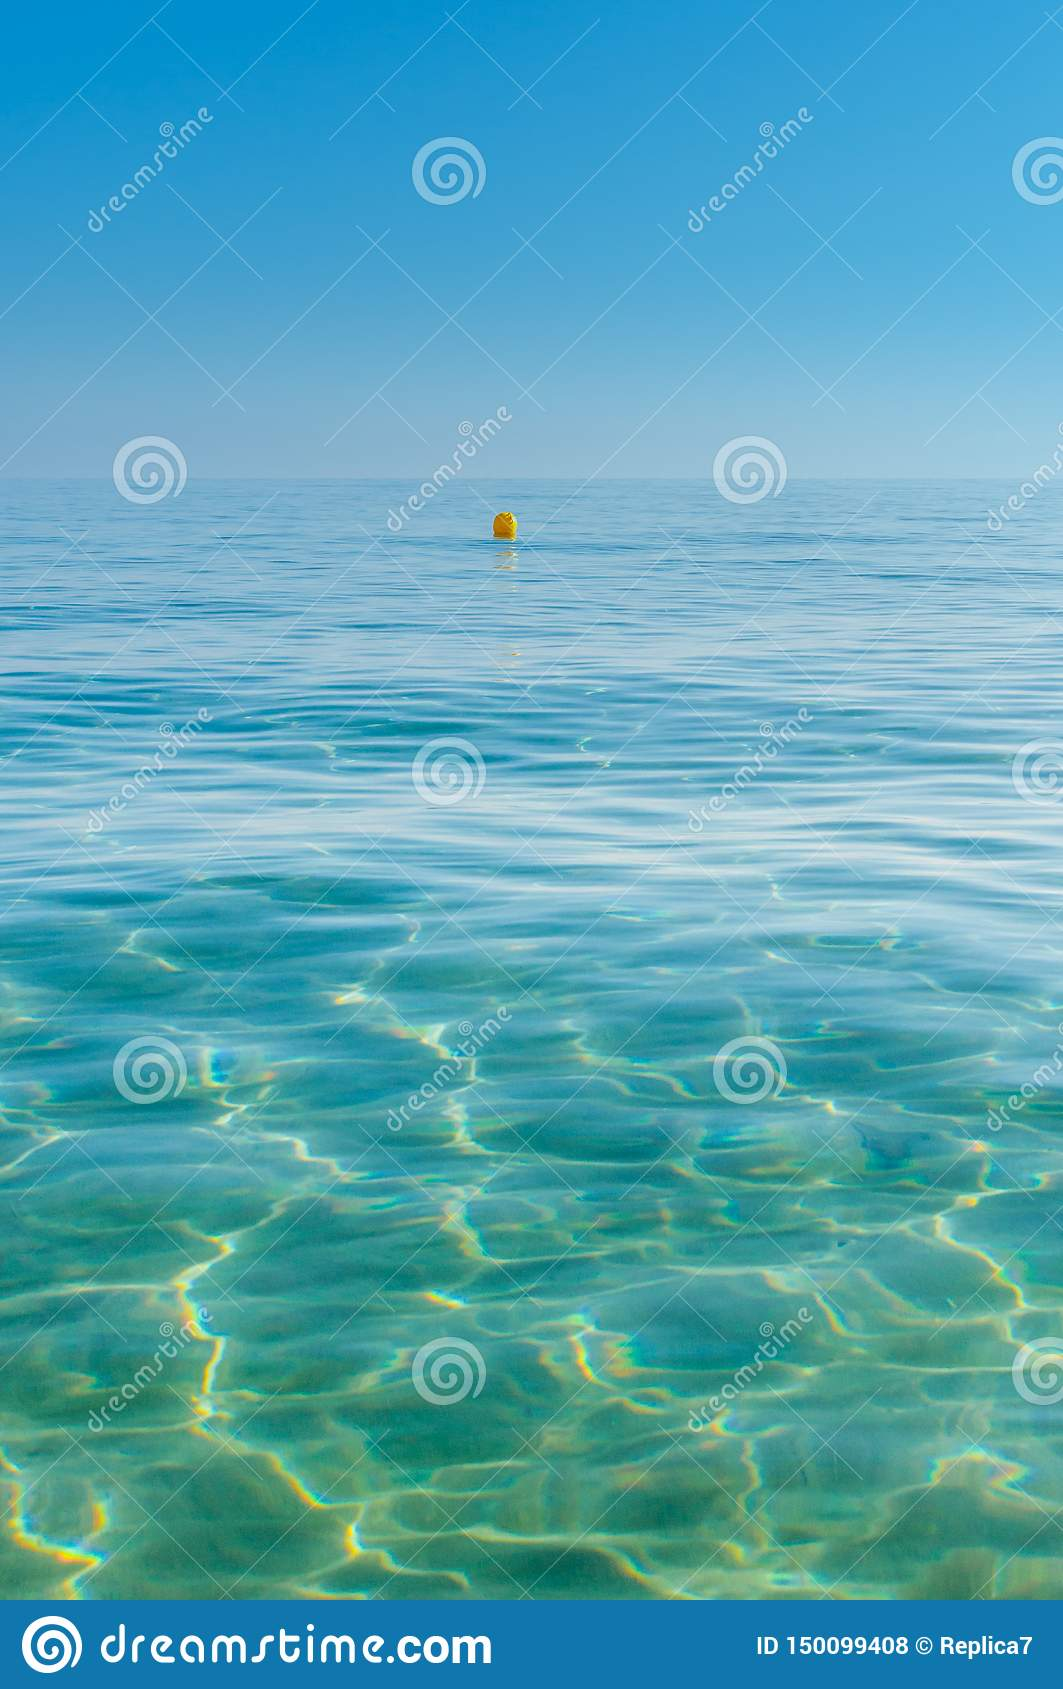 Sea Water With Yellow Marker Buoy Stock Photo - Image of